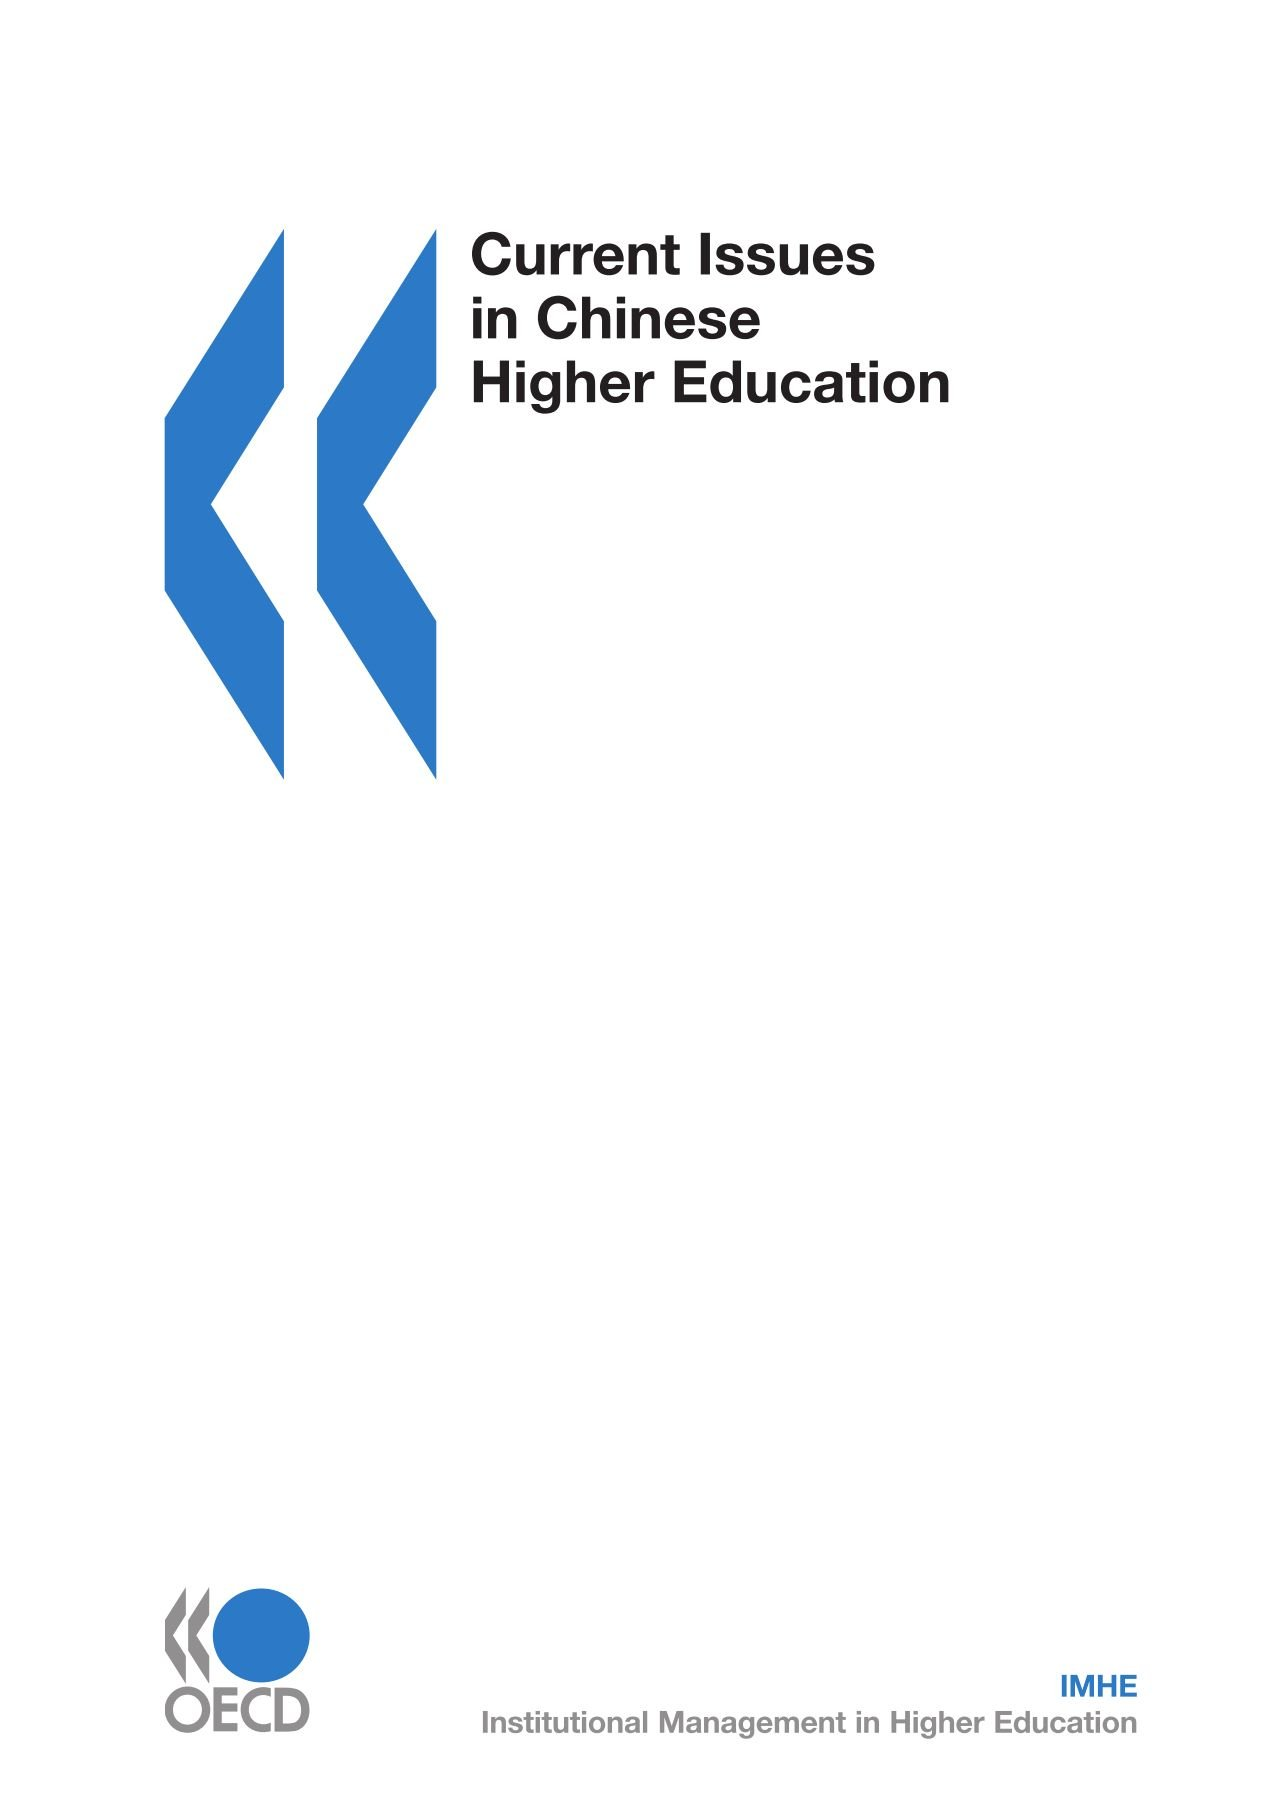 Current Issues in Chinese Higher Education (Education & skills) pdf